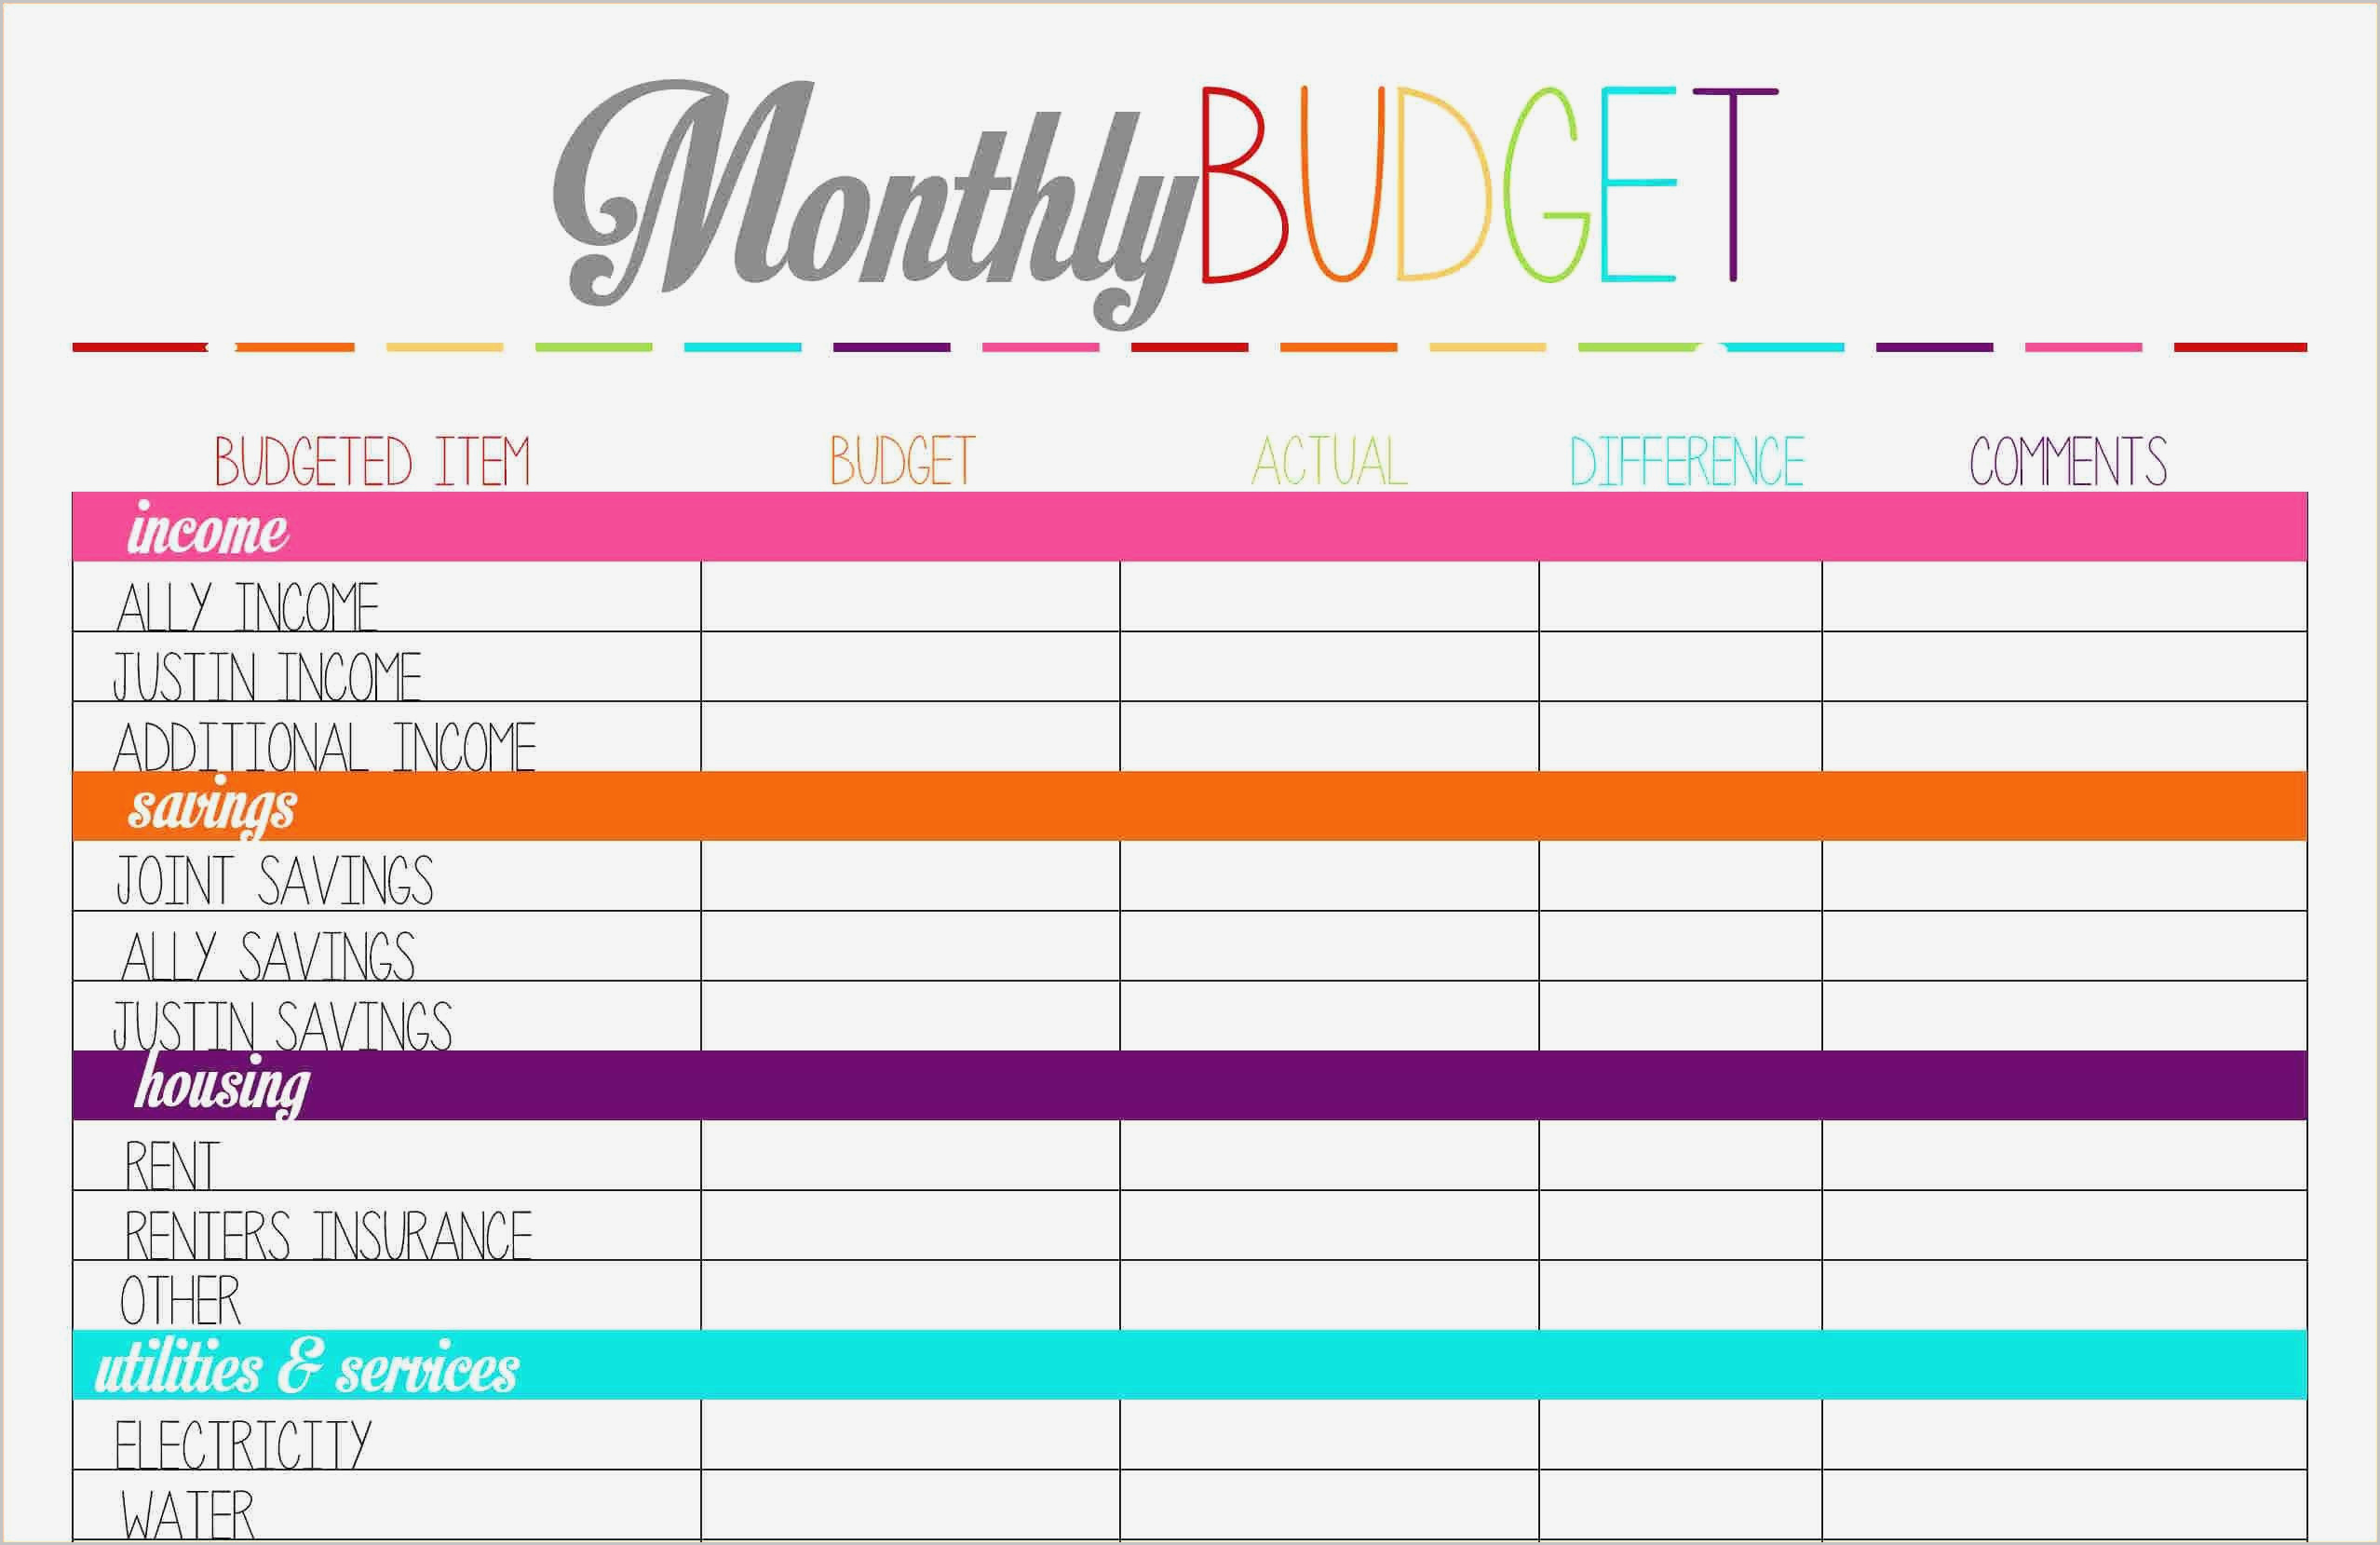 Monthly Budget Sheet Example